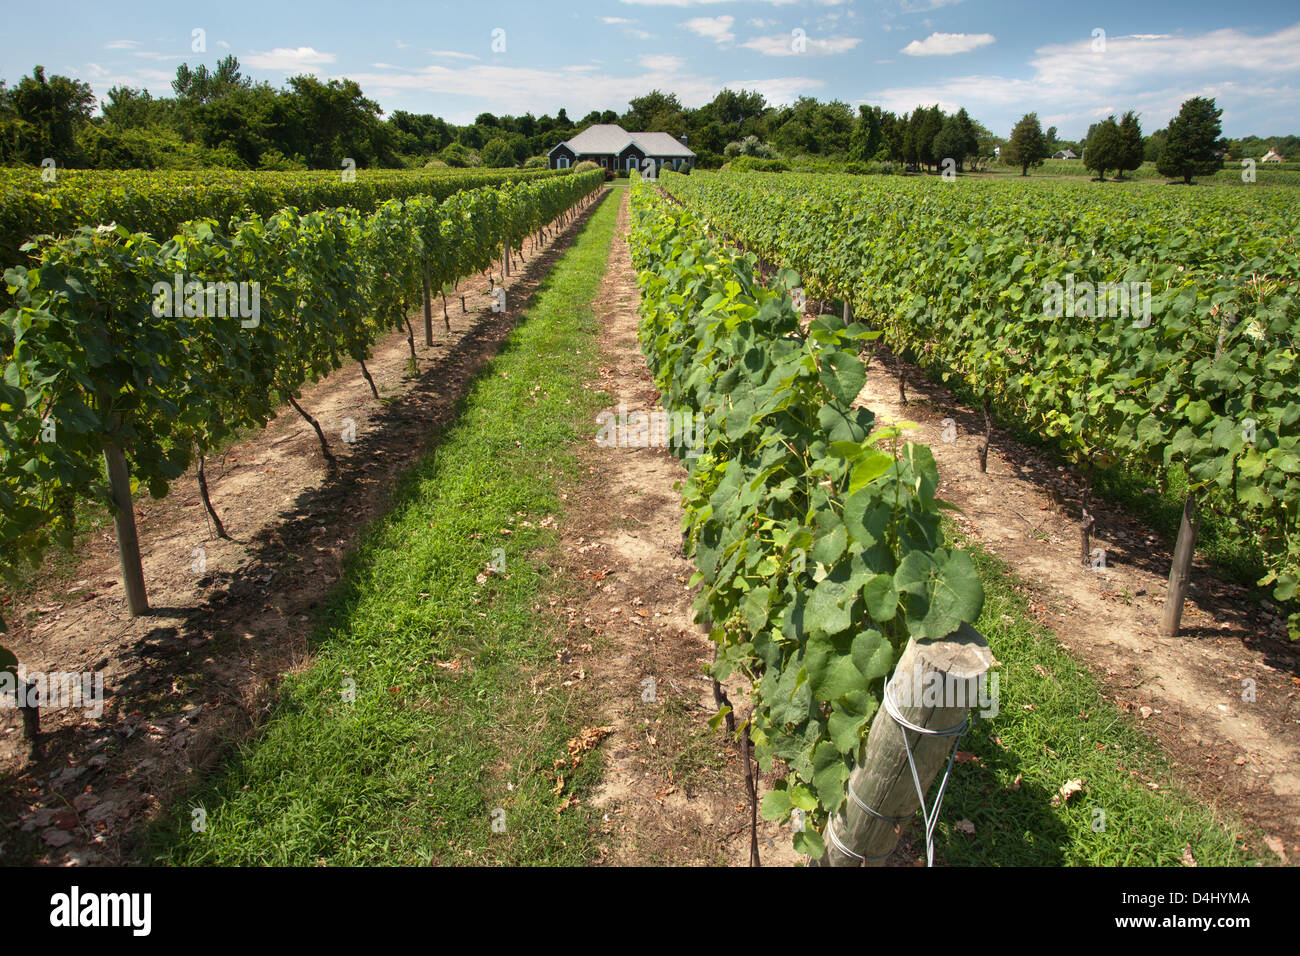 VINES AT DUCK WALK WINERY MONTAUK HIGHWAY WATER MILL LONG ISLAND NEW YORK STATE USA - Stock Image